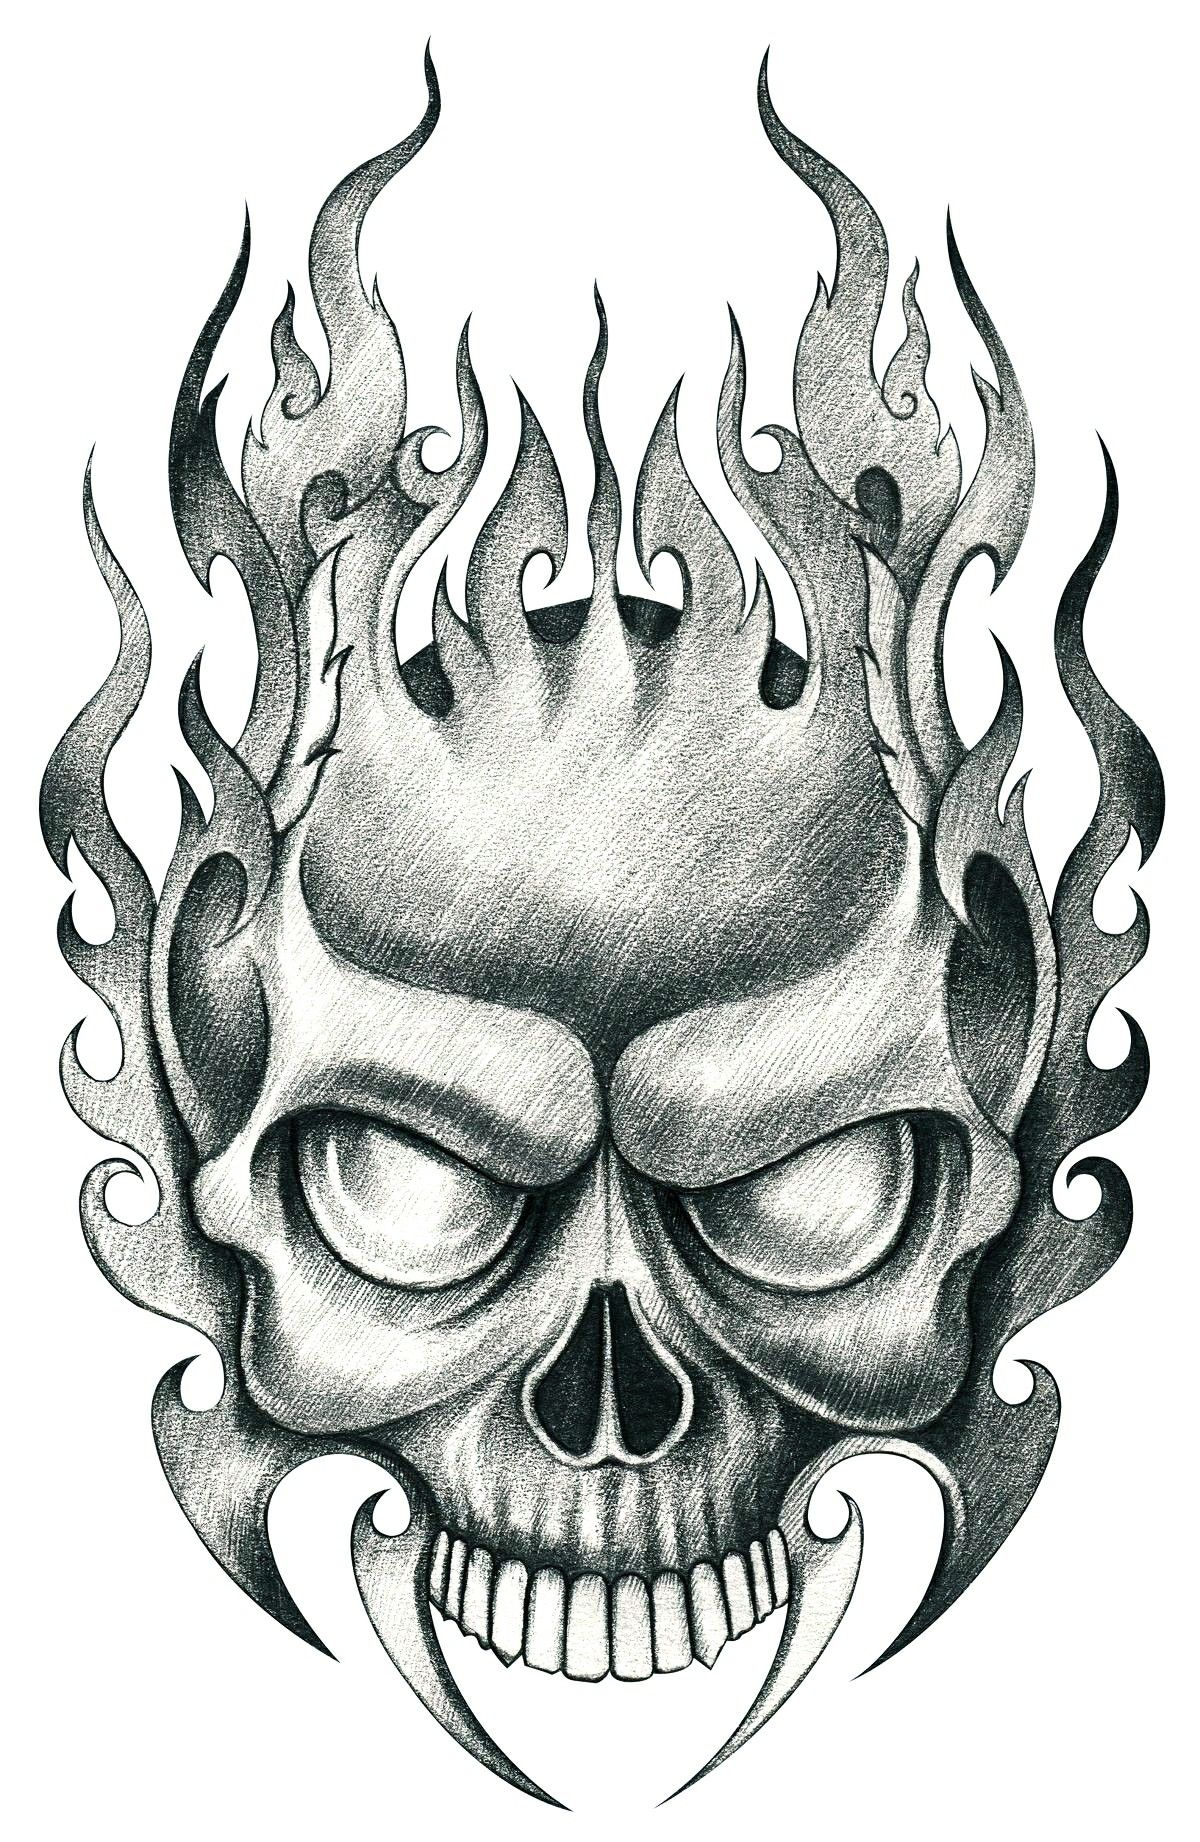 Tribal Flame Skull Skulls drawing, Tattoo design